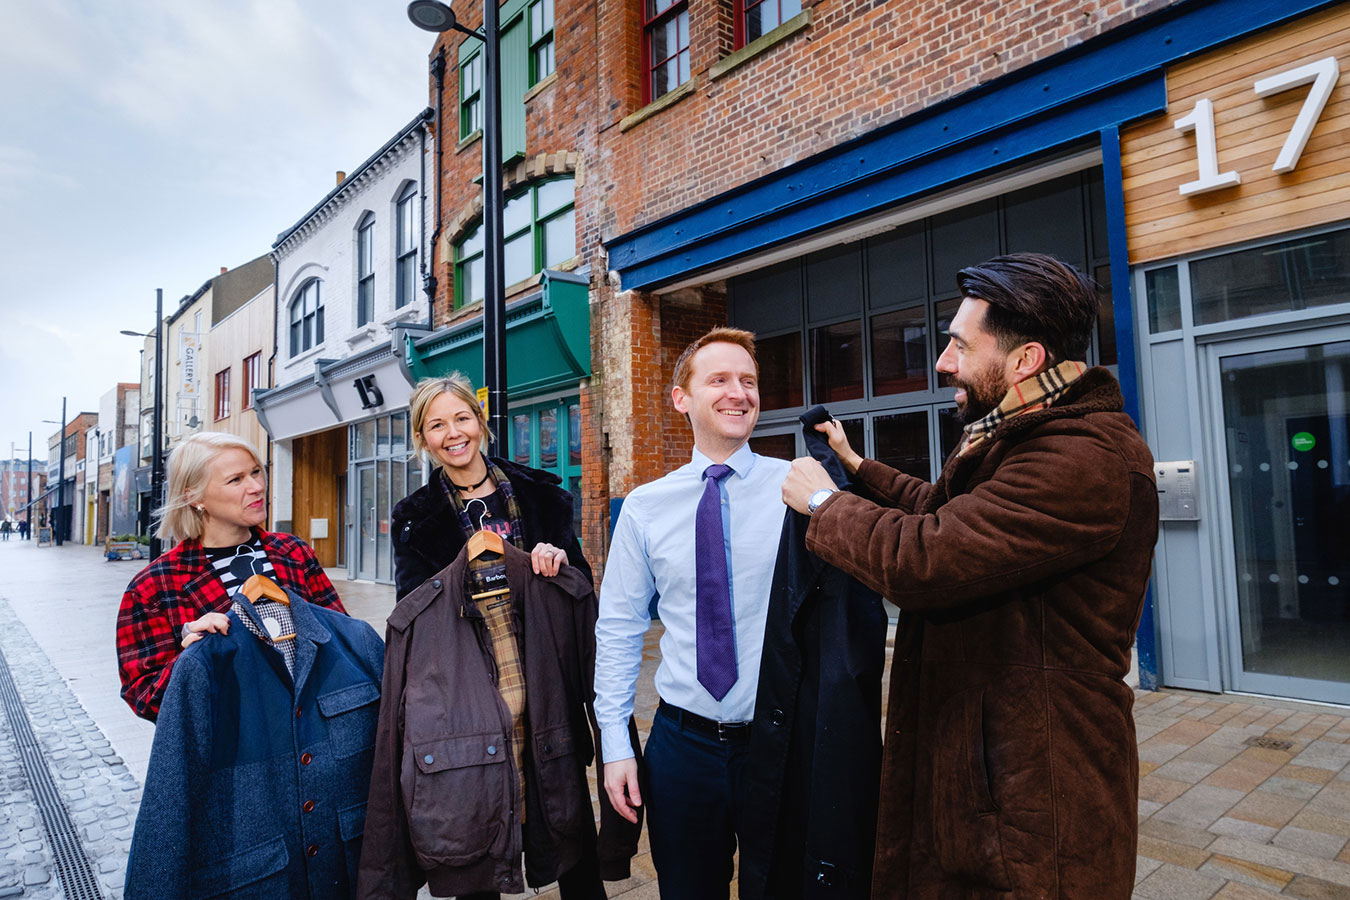 Owner Riccardo Seaton sizes up Wykeland's Tom Watson for a classic Burberry coat from Poorboy Boutique's range, watched by Angela Seaton and Caroline Pendleton, right.